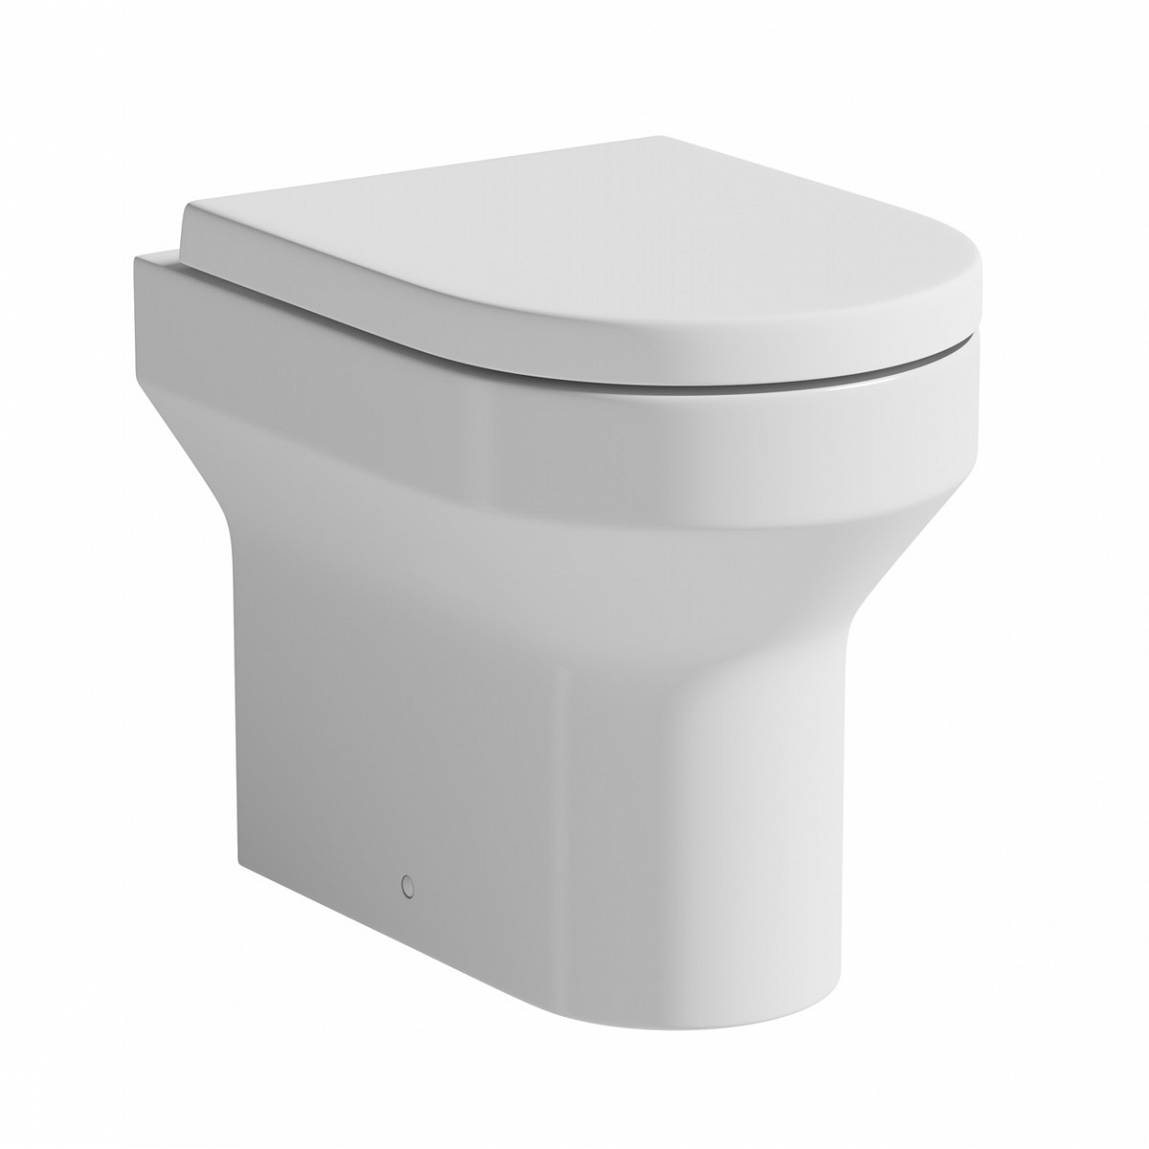 Image of Oakley Back to Wall Toilet inc Luxury Soft Close Seat